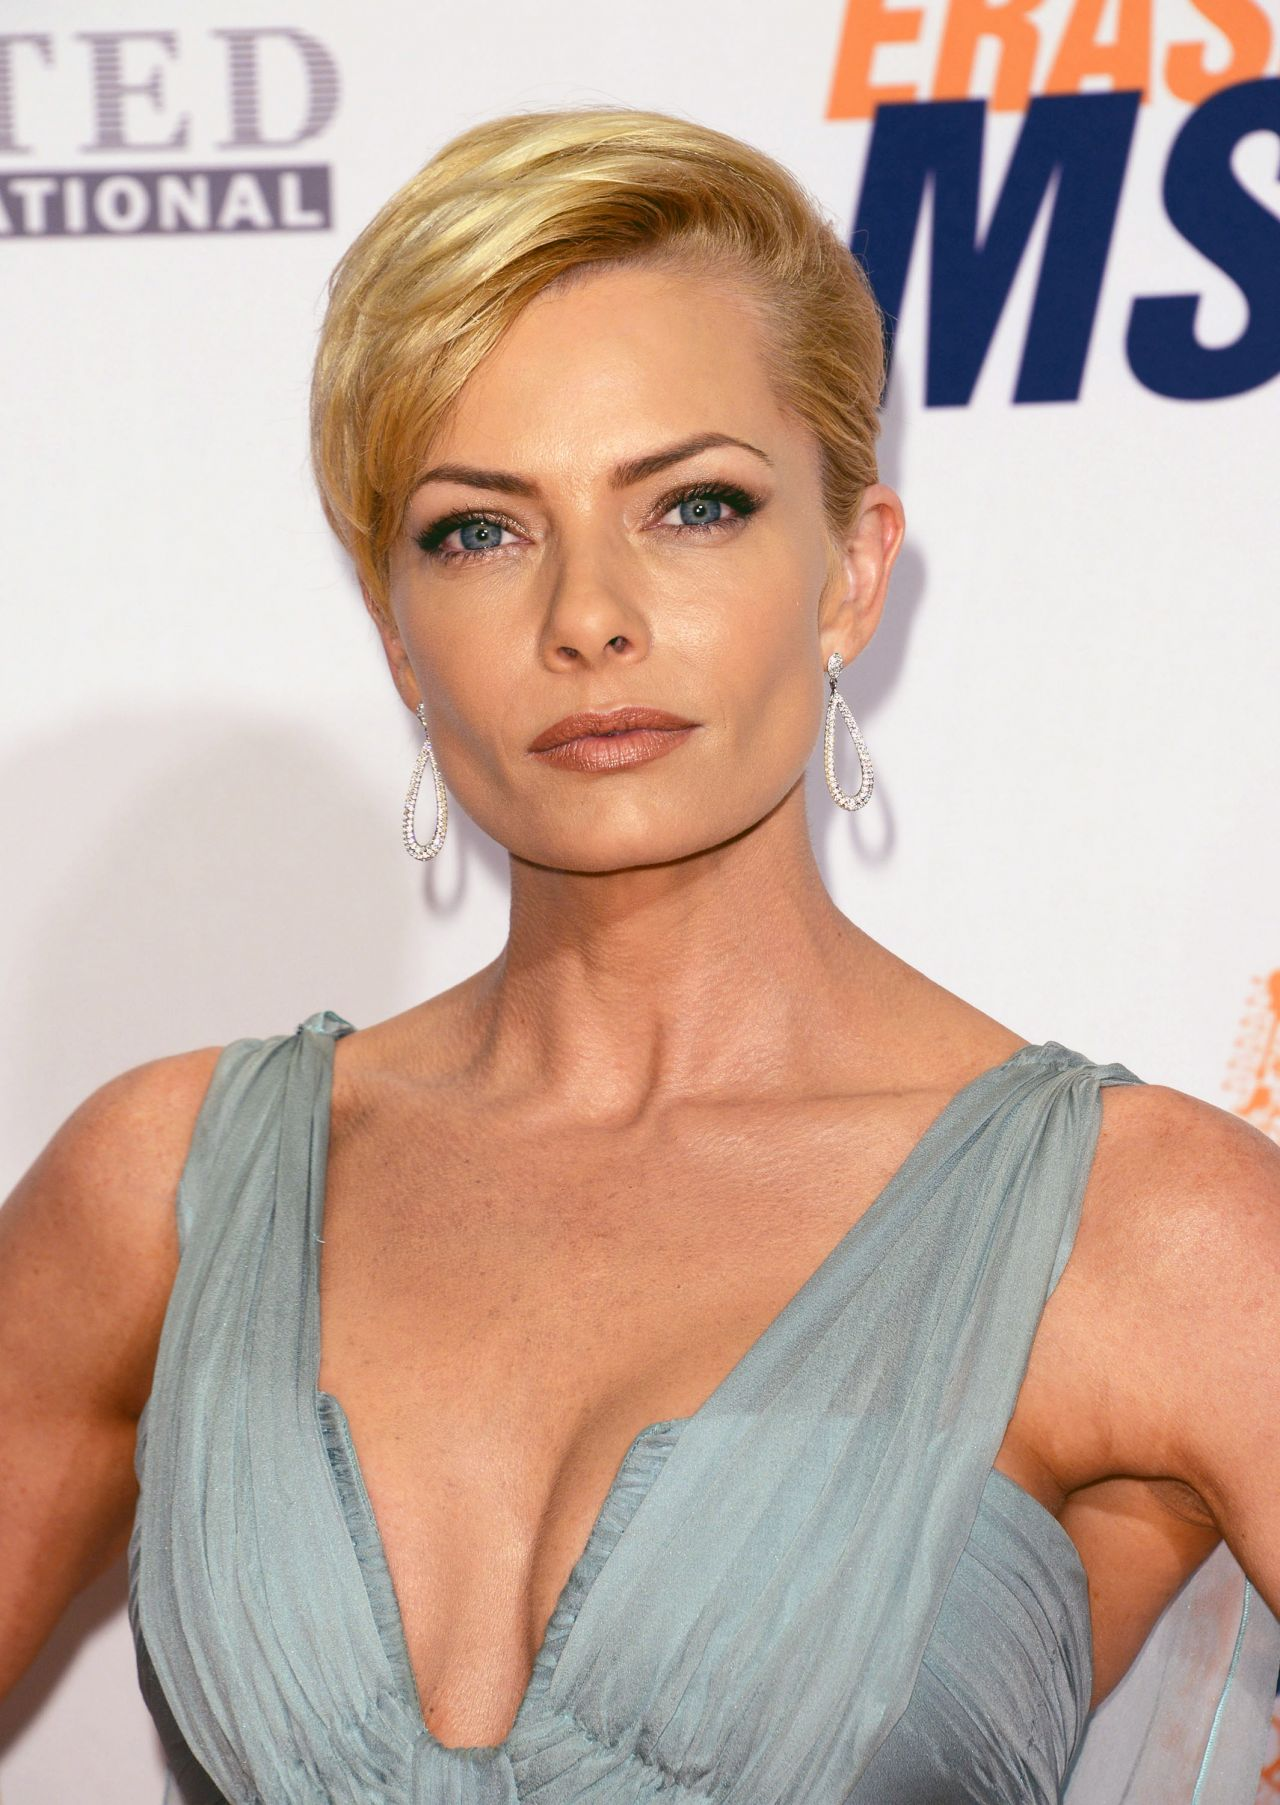 Images Jaime Pressly naked (15 photo), Tits, Leaked, Boobs, braless 2020